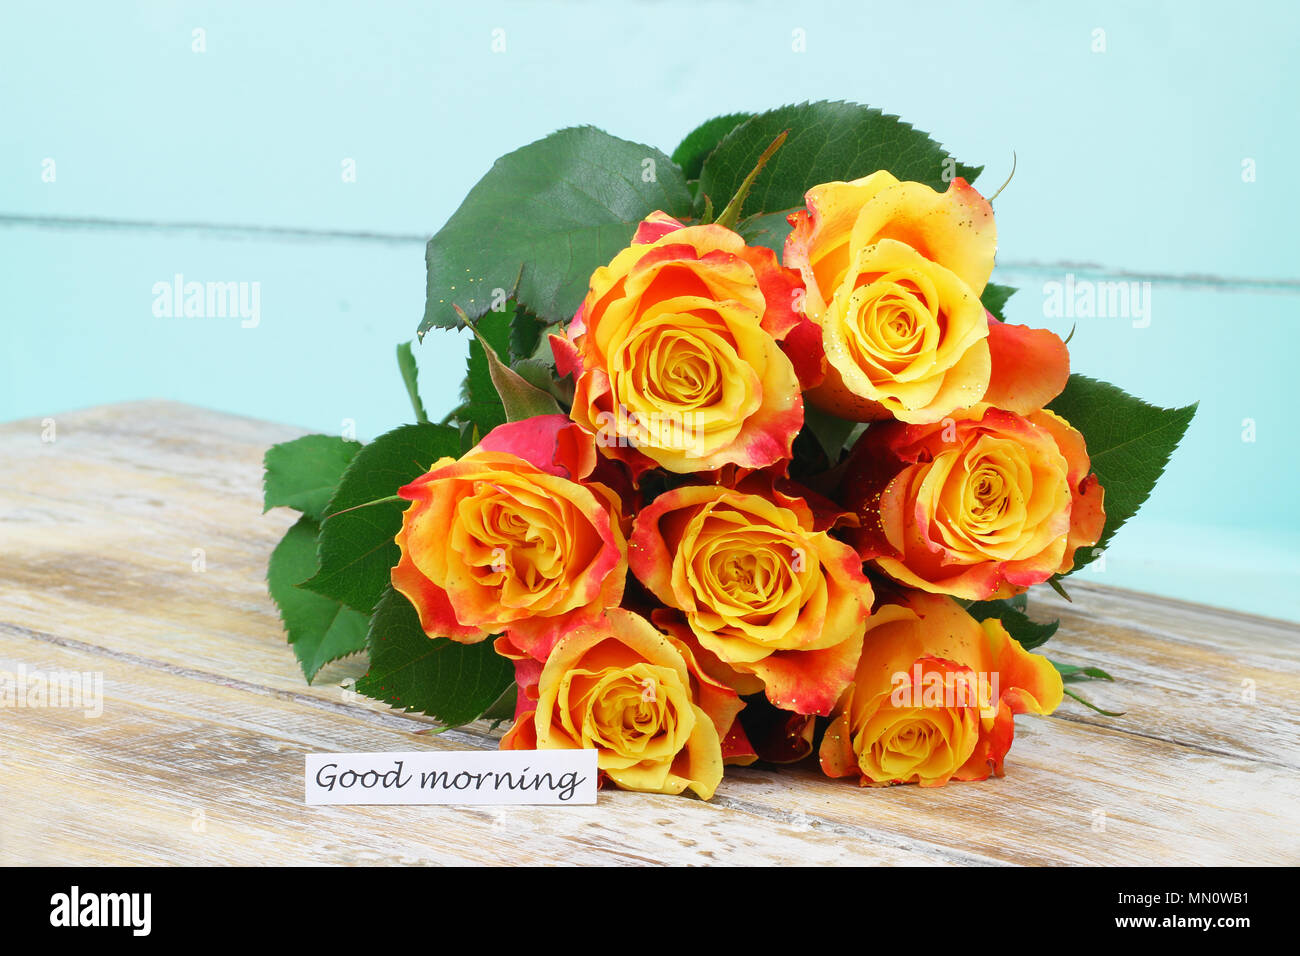 Good Morning Card With Bouquet Of Red And Yellow Roses Sprinkled